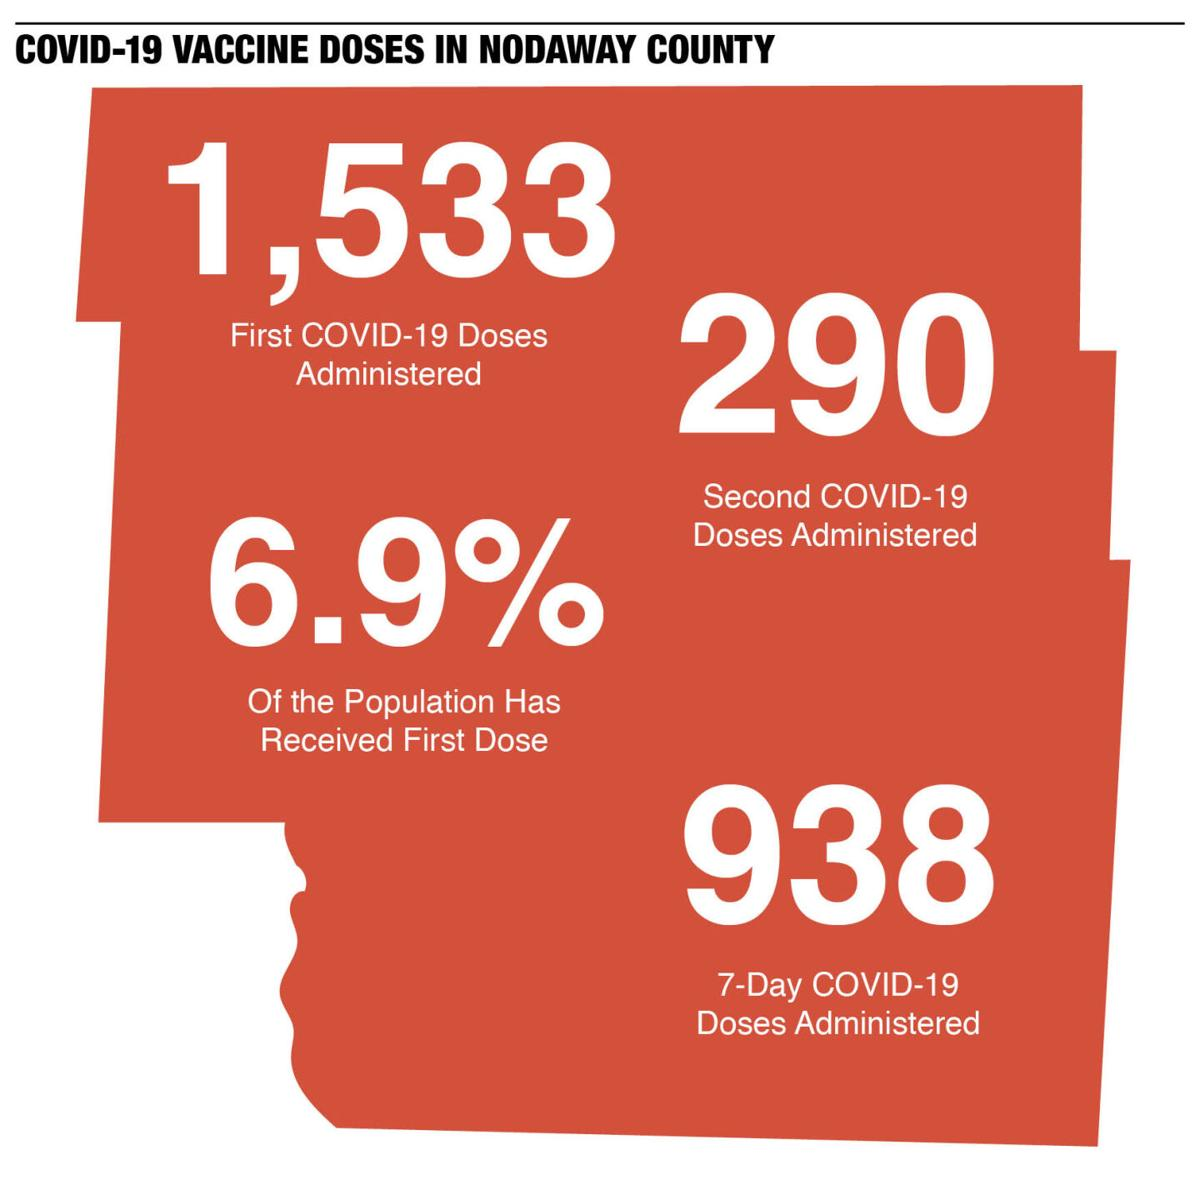 Nodaway County doses administered infographic